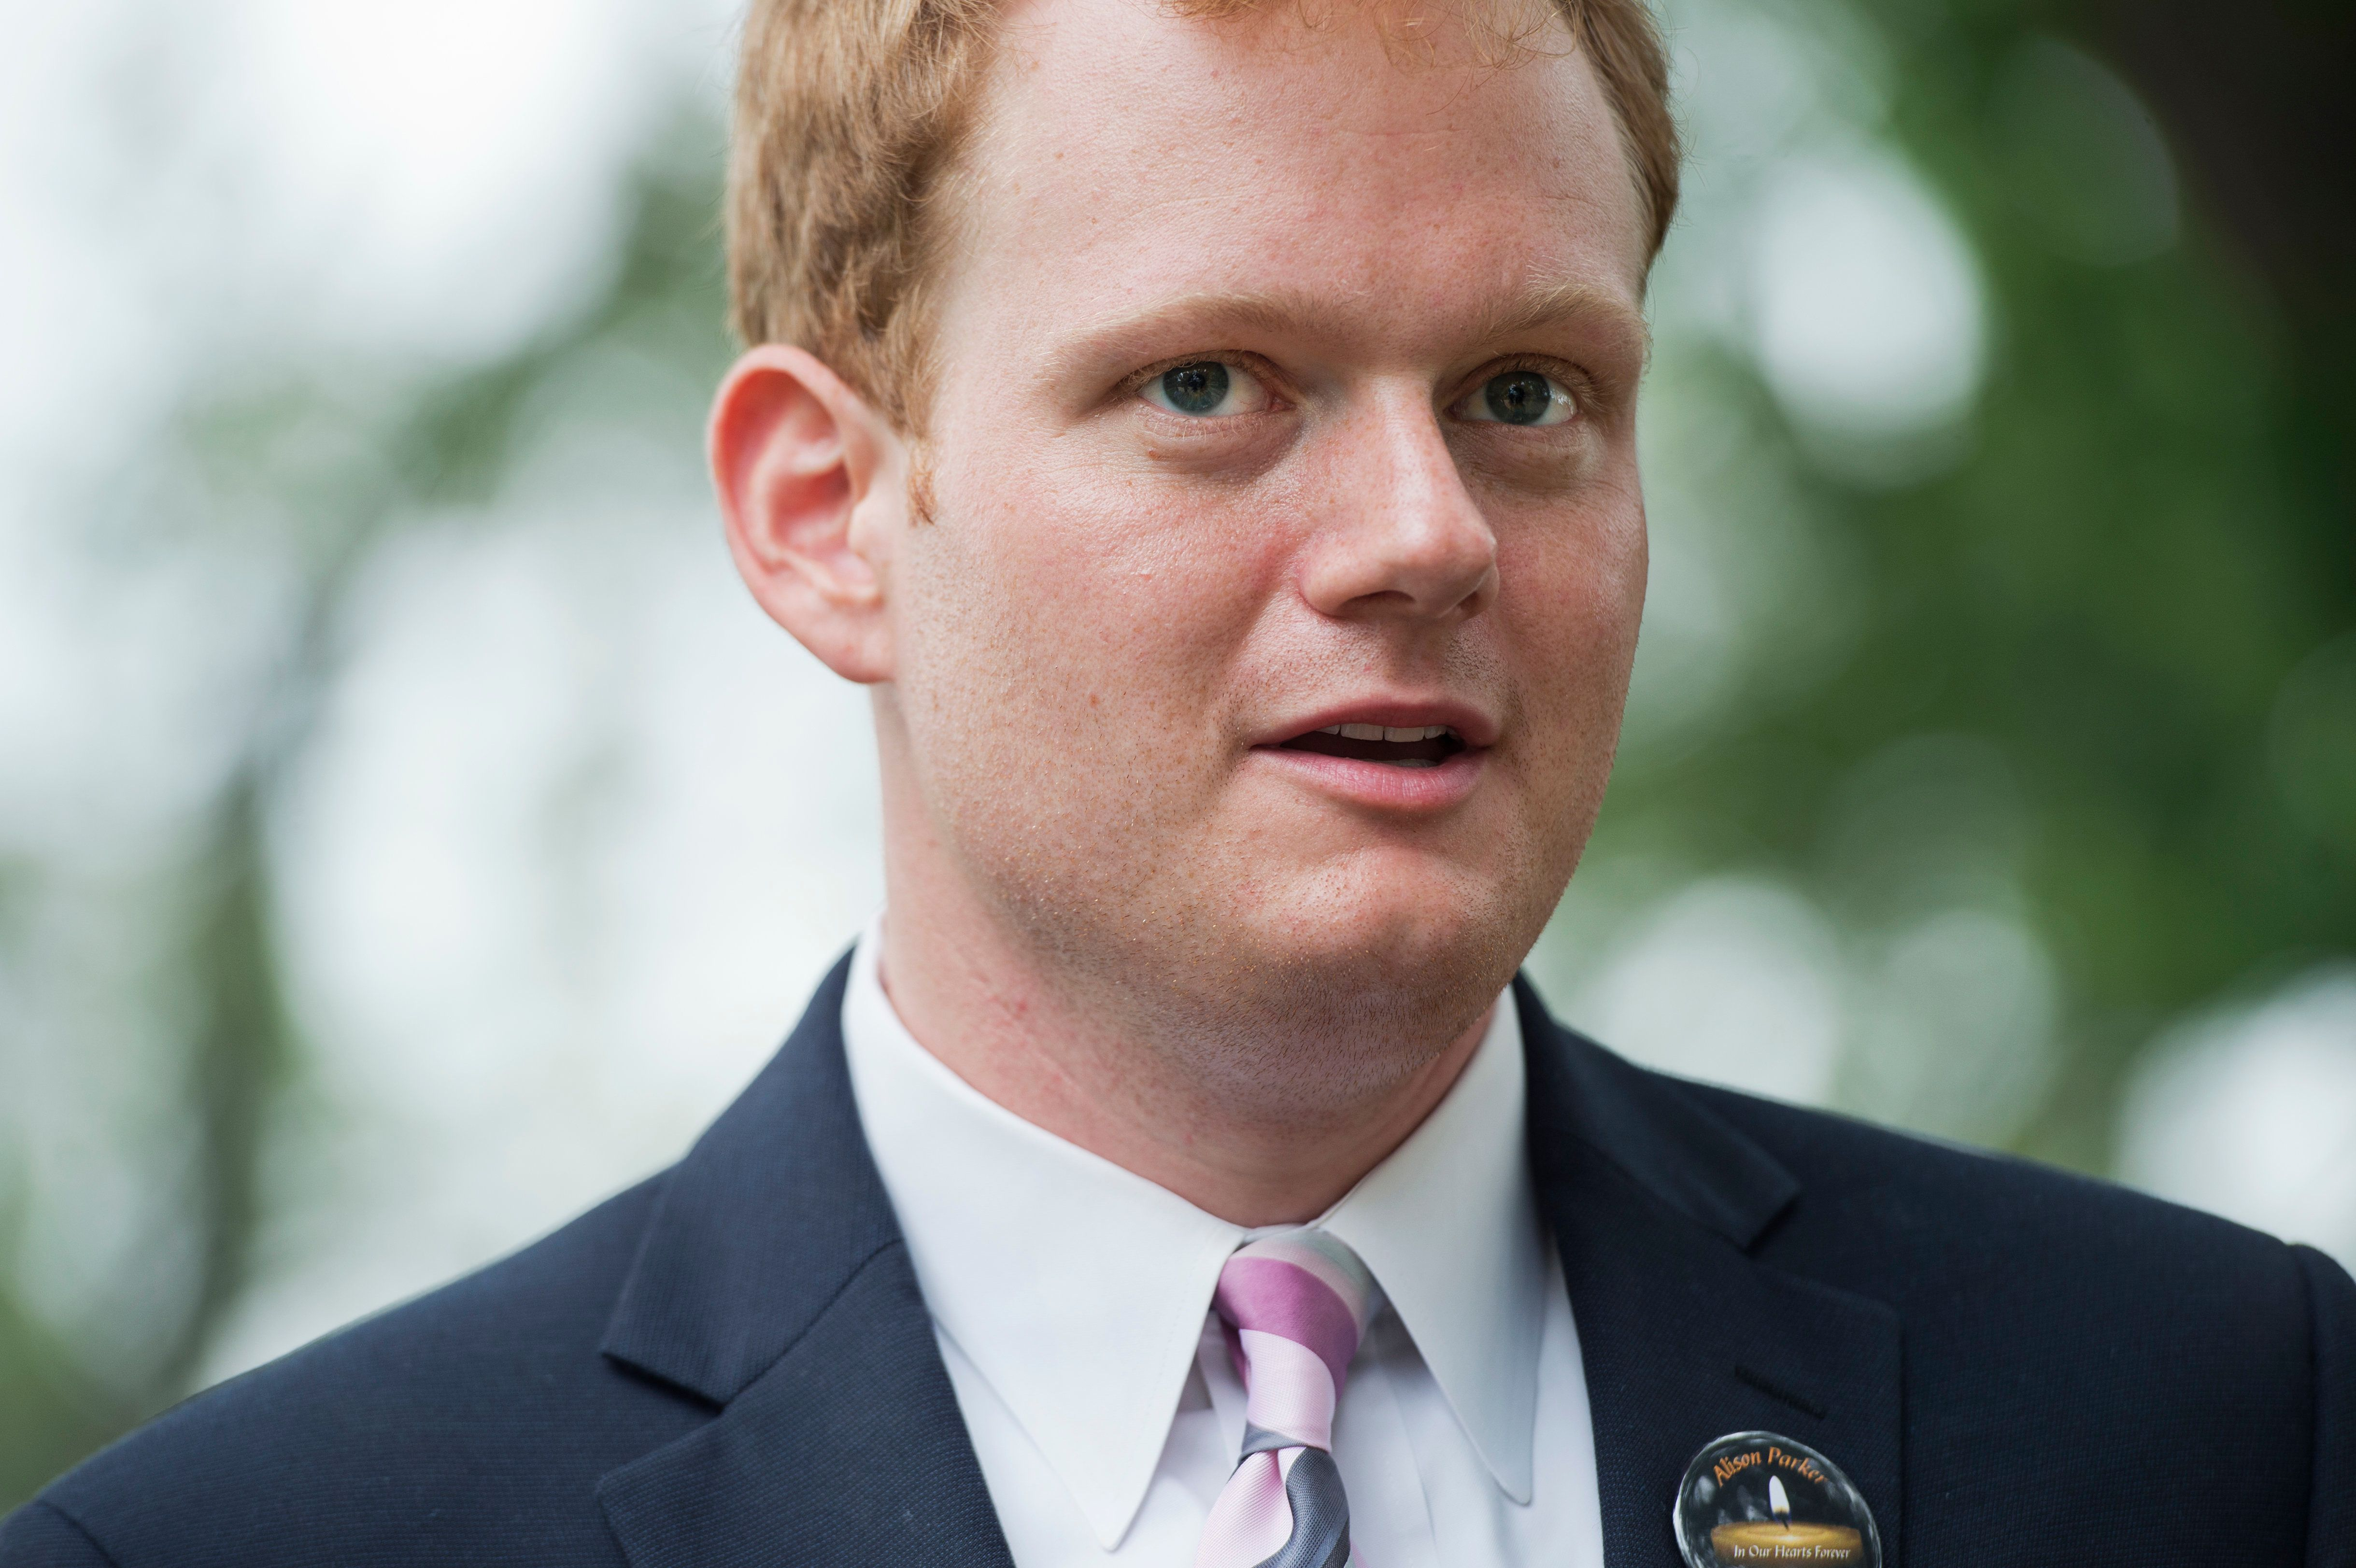 UNITED STATES - SEPTEMBER 10: Chris Hurst, whose girlfriend Alison Parker, a reporter for WDBJ-TV reporter, was killed on air last month, greets Gov. Terry McAuliffe, D-Va., during a rally on the East Front lawn of the Capitol to demand that Congress take action on gun control legislation, September 10, 2015. The event, titled #Whateverittakes Day of Action, was hosted by Everytown for Gun Safety and featured speeches by political leaders and families of gun violence victims. (Photo By Tom Williams/CQ Roll Call)